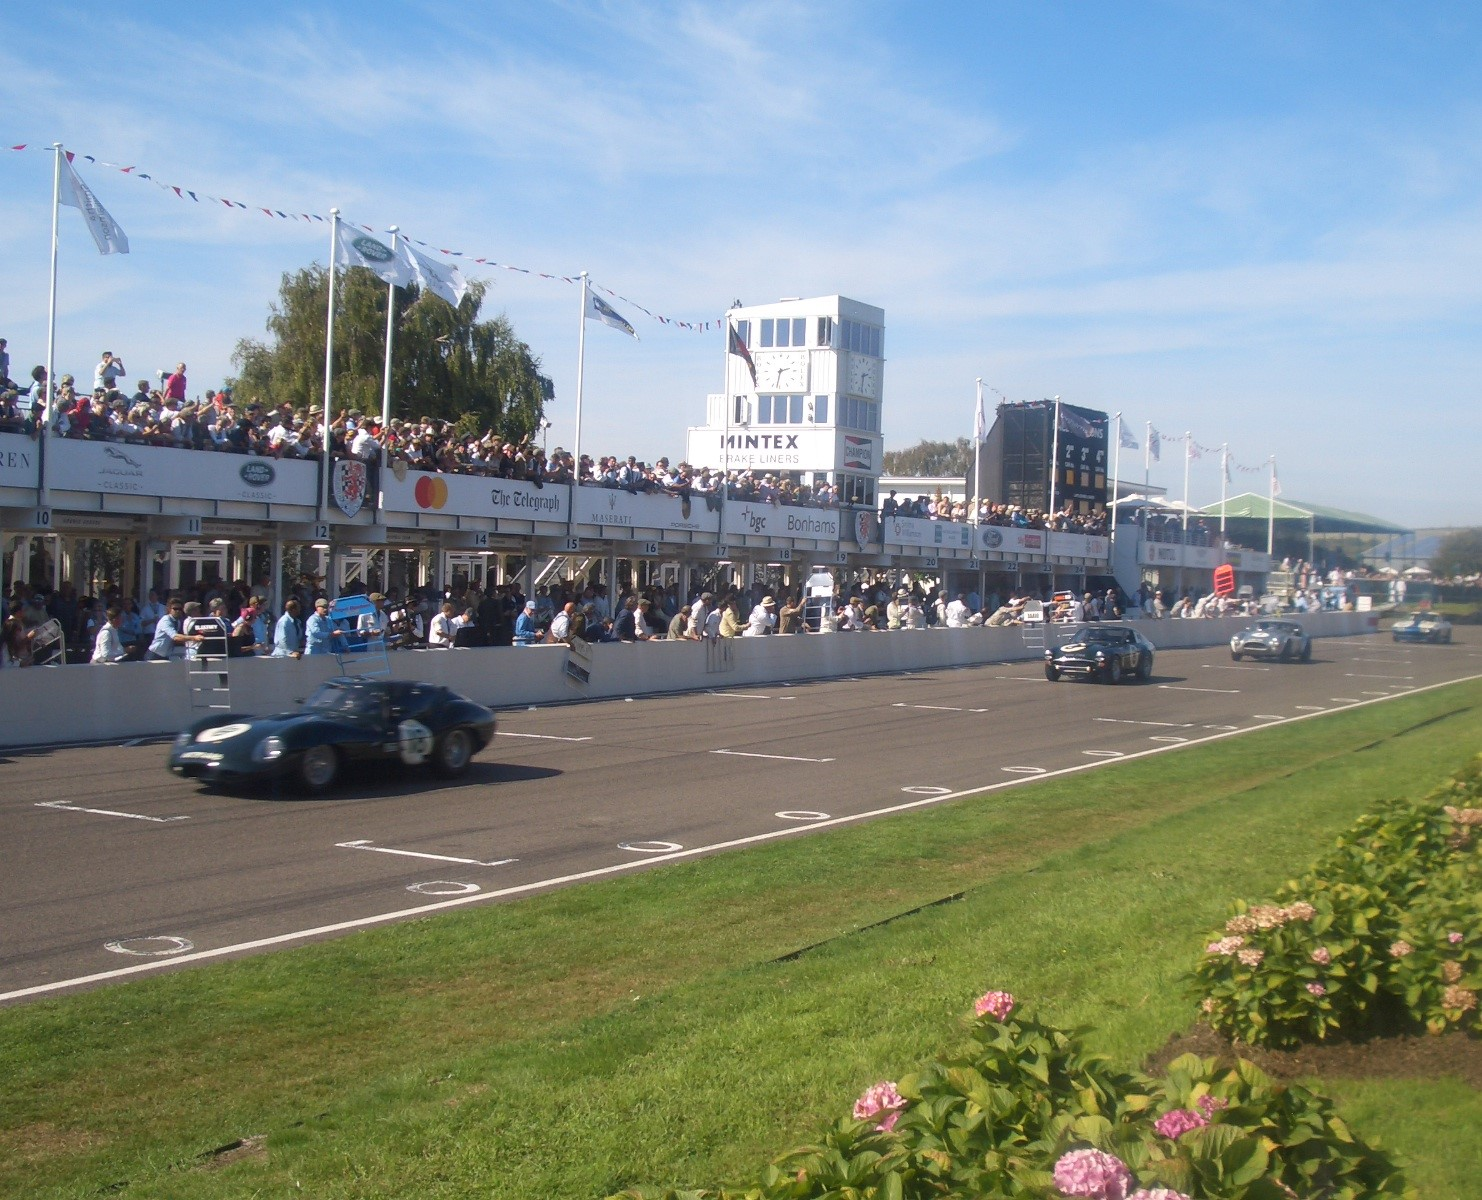 Goodwood announces the full starting line-up for the 2021 Revival.